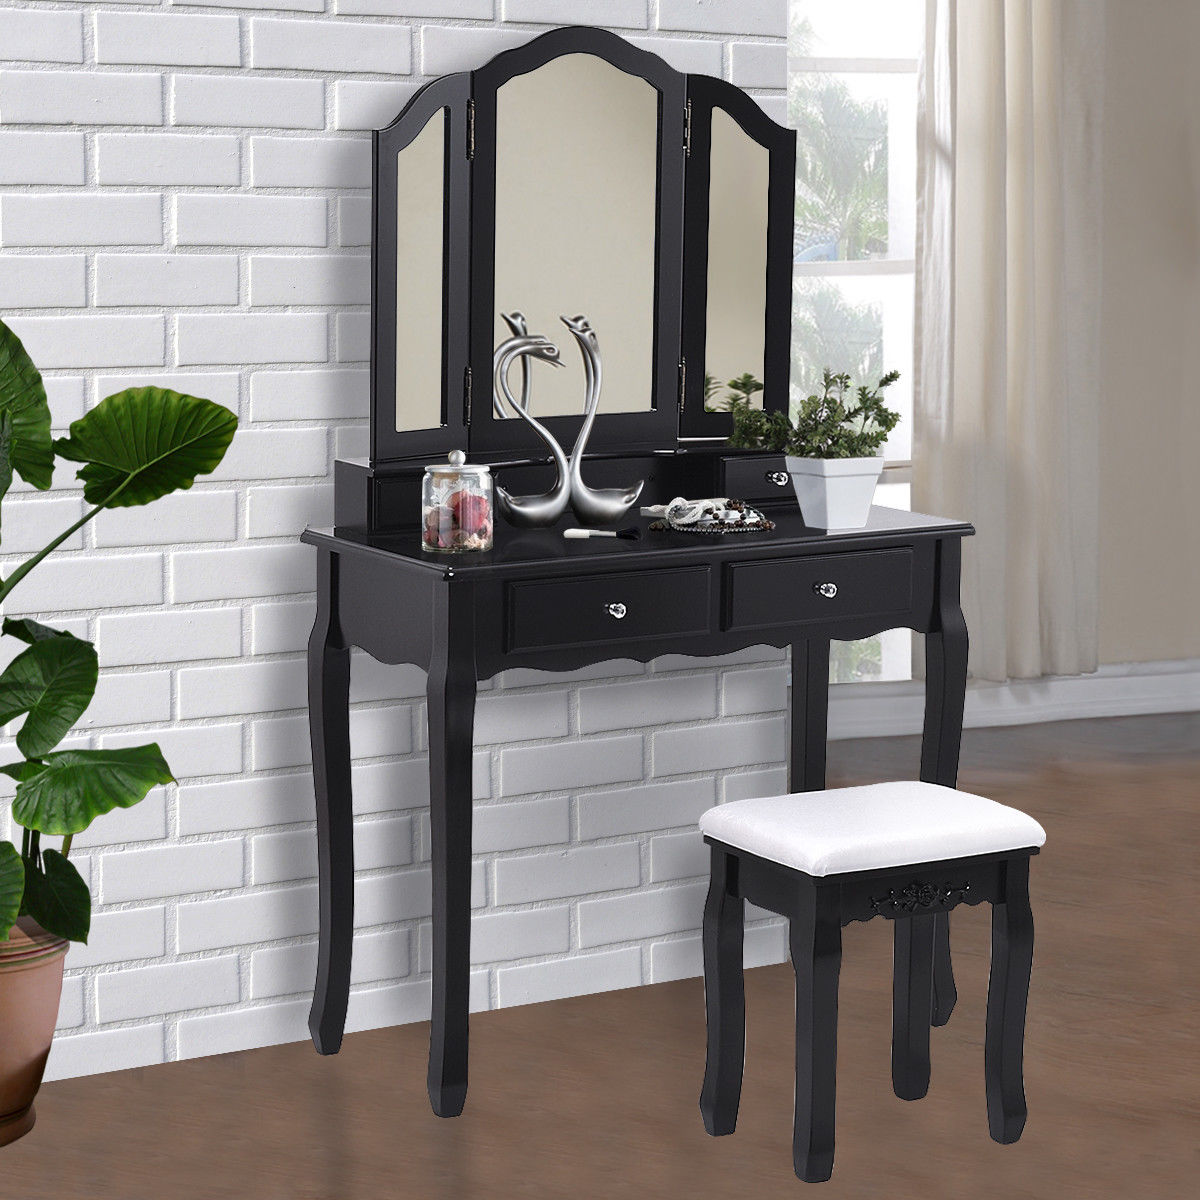 Giantex Black Tri Folding Mirror Vanity Makeup Dressing Table Stool Set Modern Home Bedroom Furniture With 4 Drawers HW55563BK ship from germany makeup dressing table with stool 7 drawers adjustable mirrors bedroom baroque style